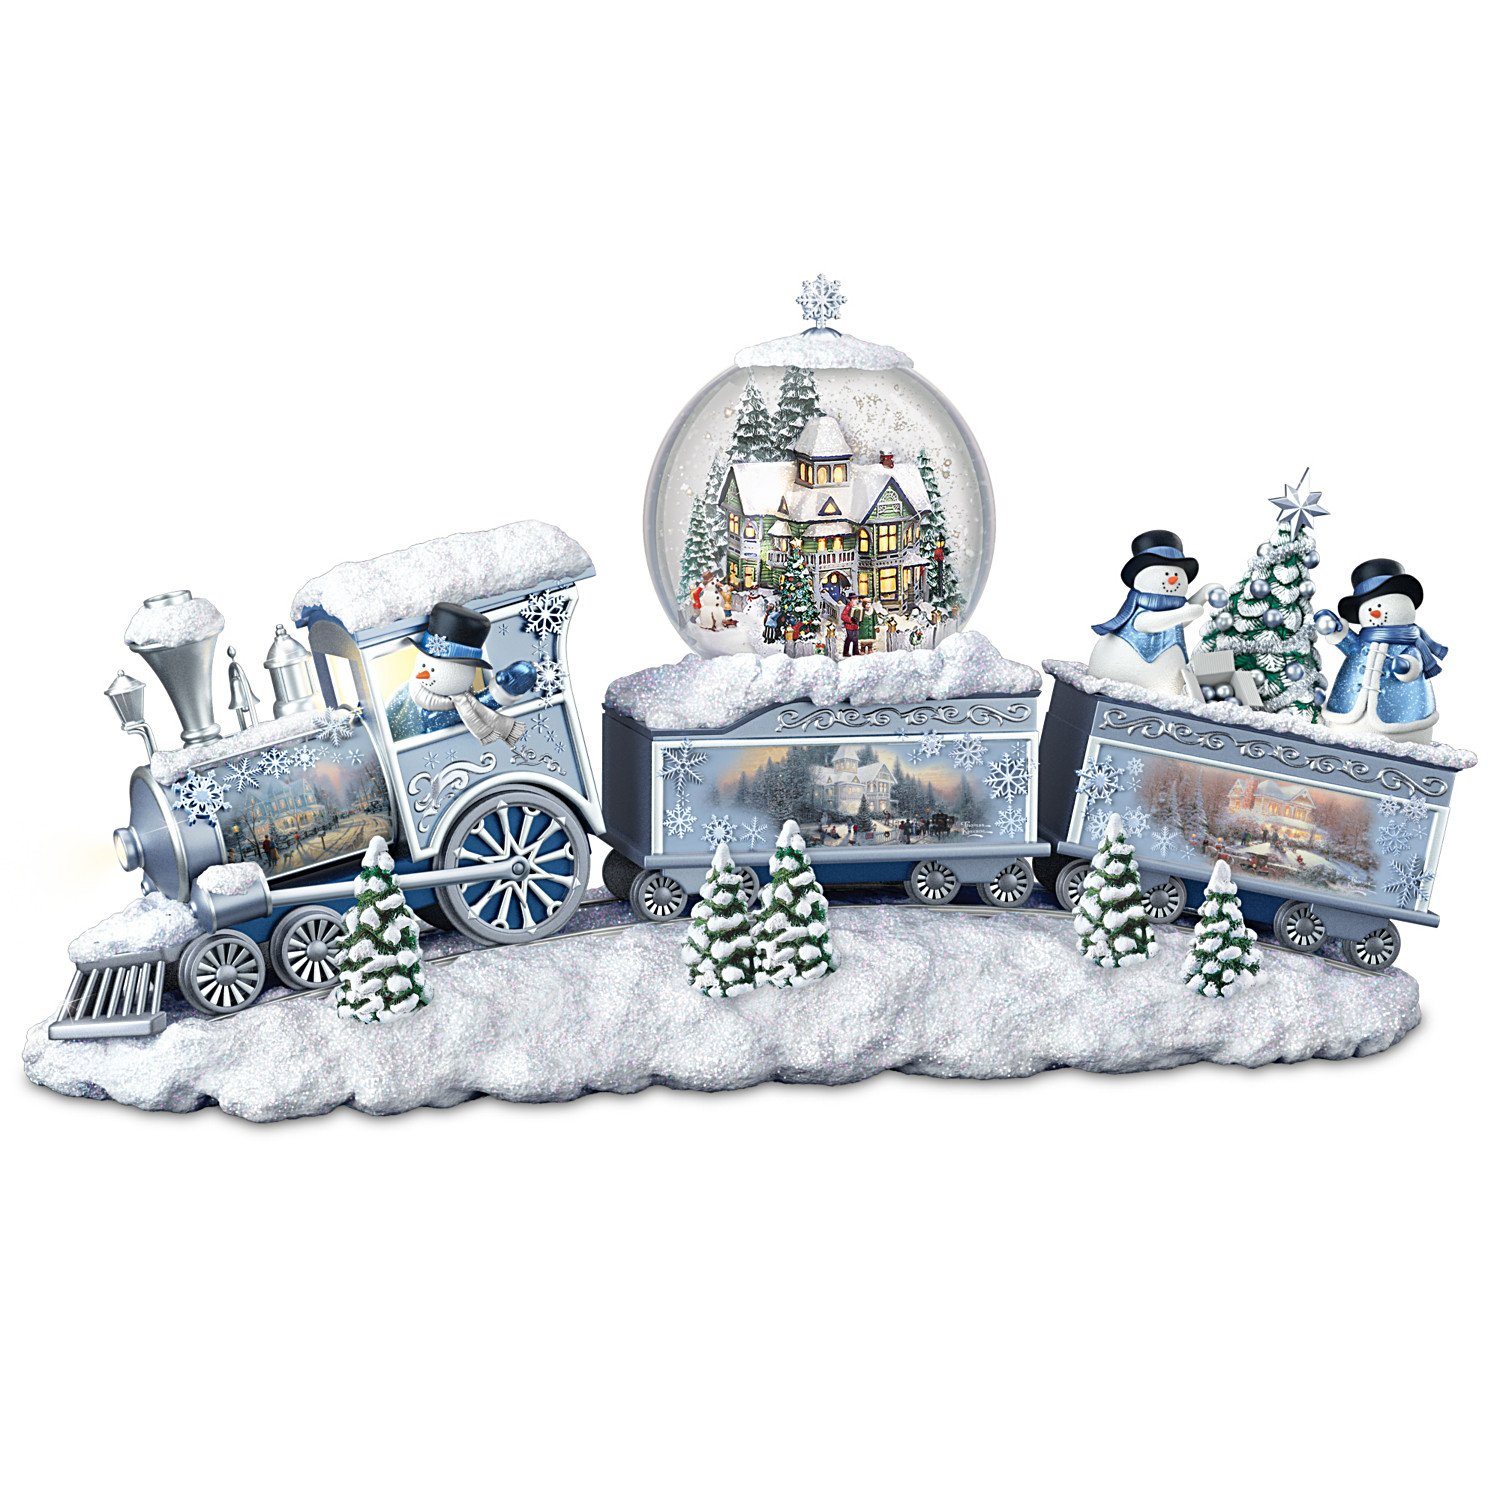 Bradford Exchange Thomas Kinkade Snowfall Express Light Up Musical Snowman Snowglobe Train by The